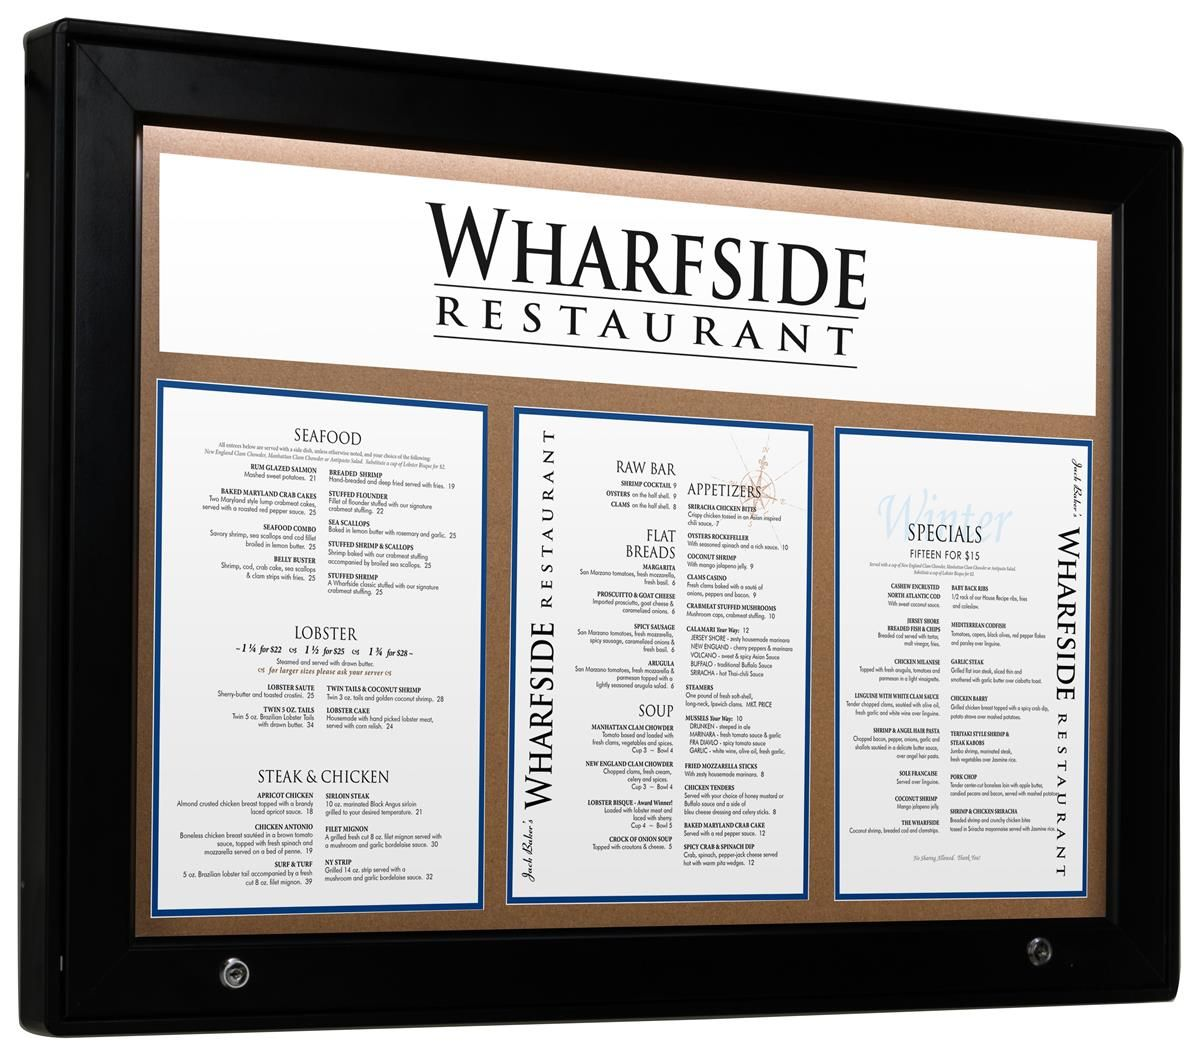 36 X 26 Enclosed Cork Board For Outdoors Illuminated With Locking Door Black In 2020 Menu Board Restaurant Coffee Shop Menu Board Menu Board Design